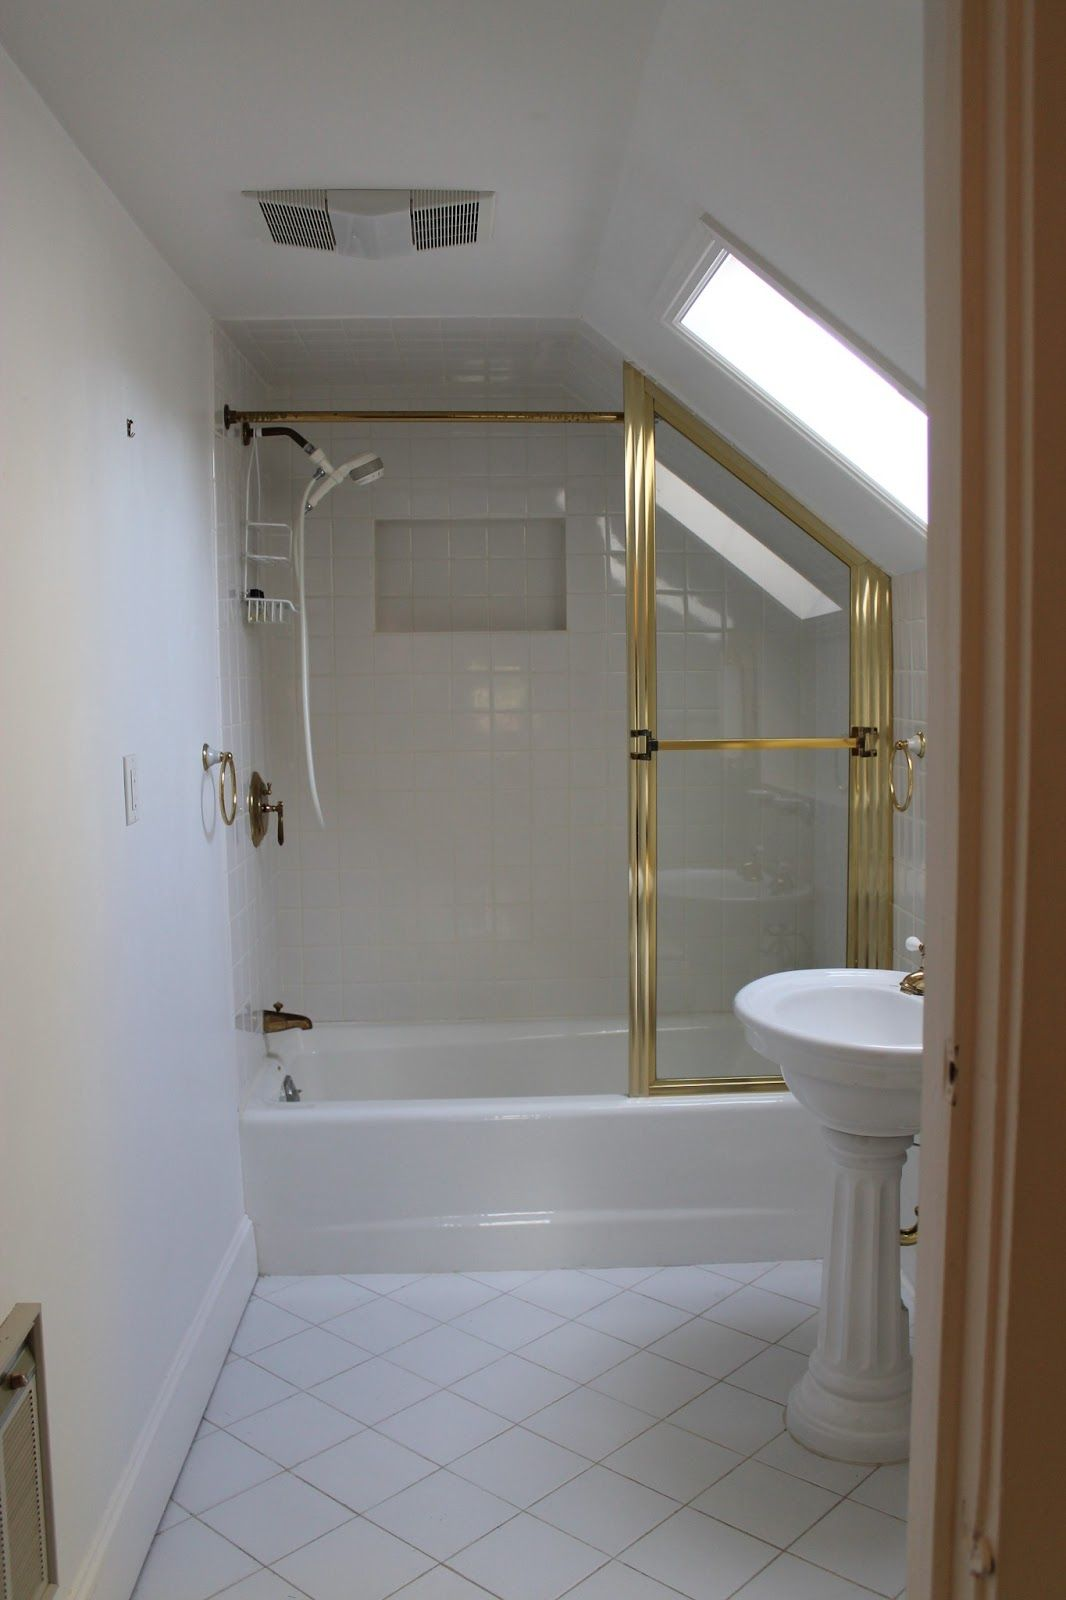 Cheap Easy Cover Up Covering Brass Shower Fixtures